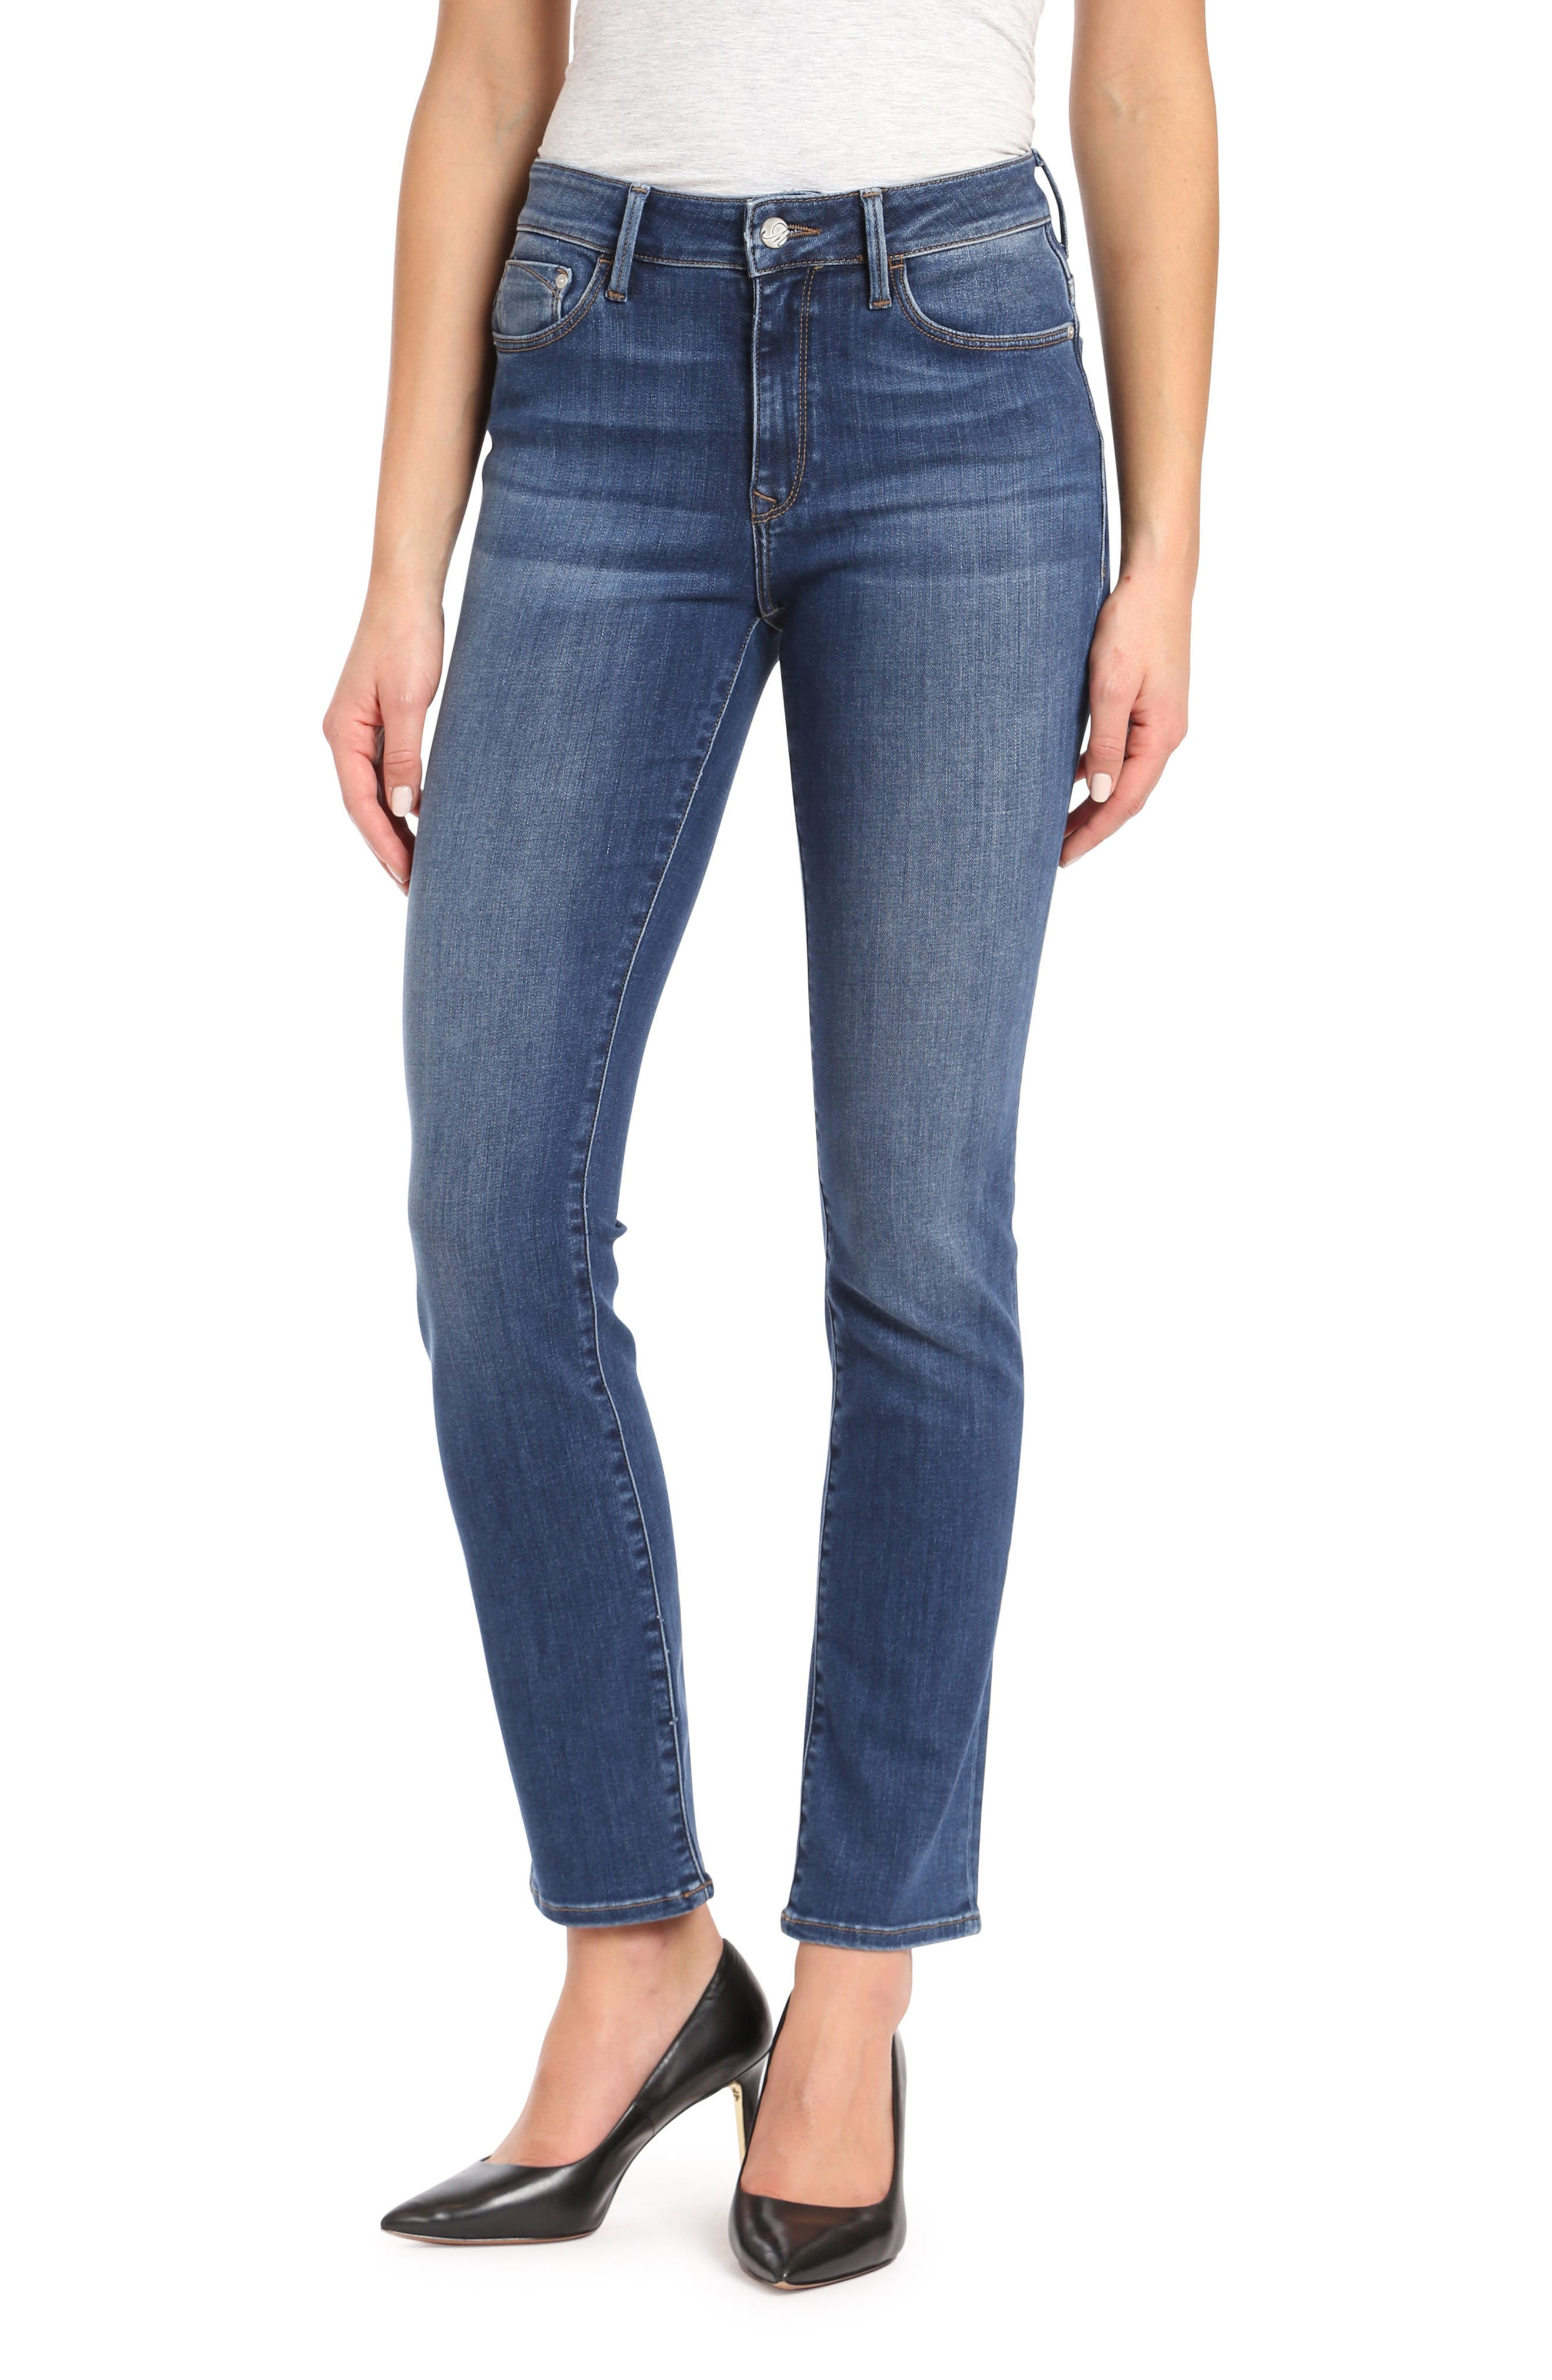 Kendra Straight Leg Jeans,                             Main thumbnail 1, color,                             INDIGO SUPER SOFT